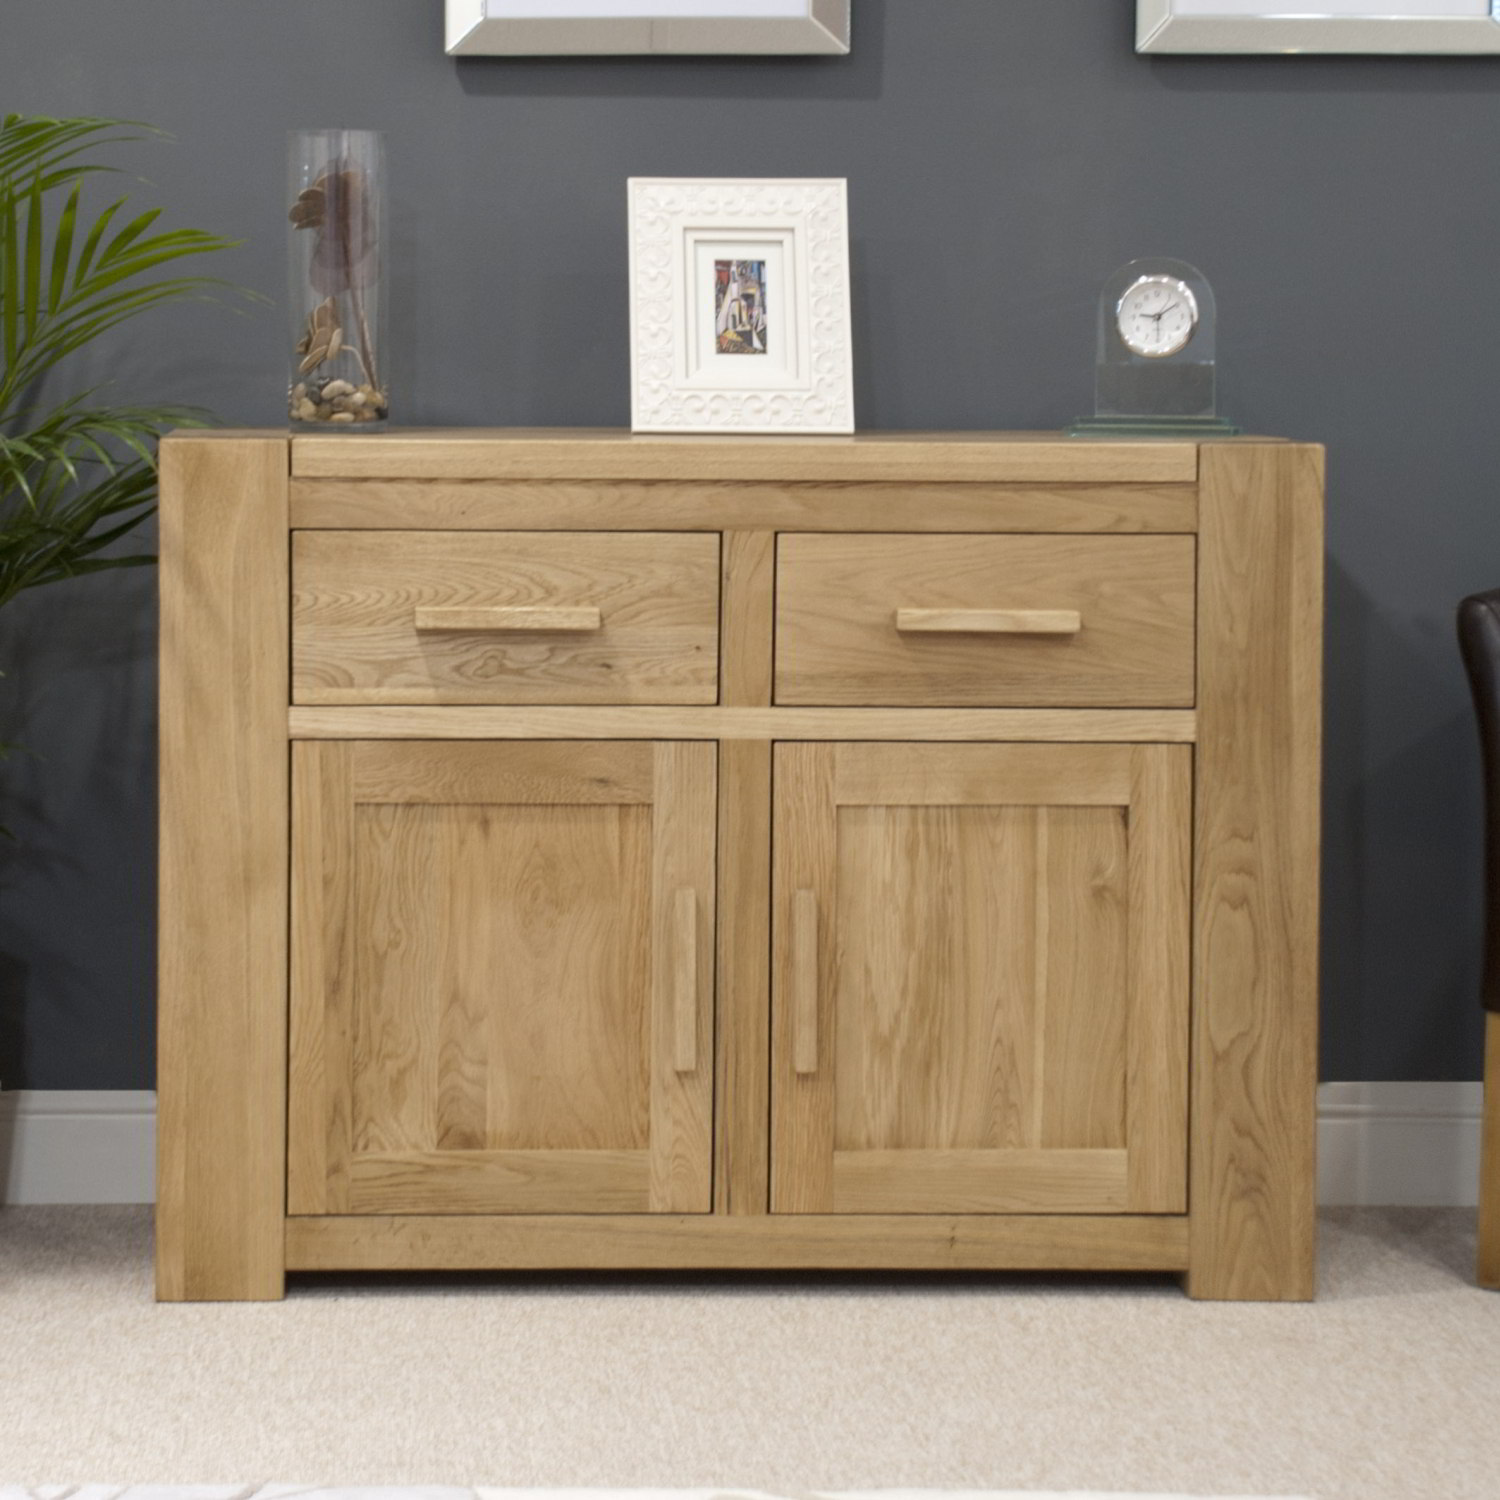 Pemberton solid oak living room furniture medium storage sideboard ...